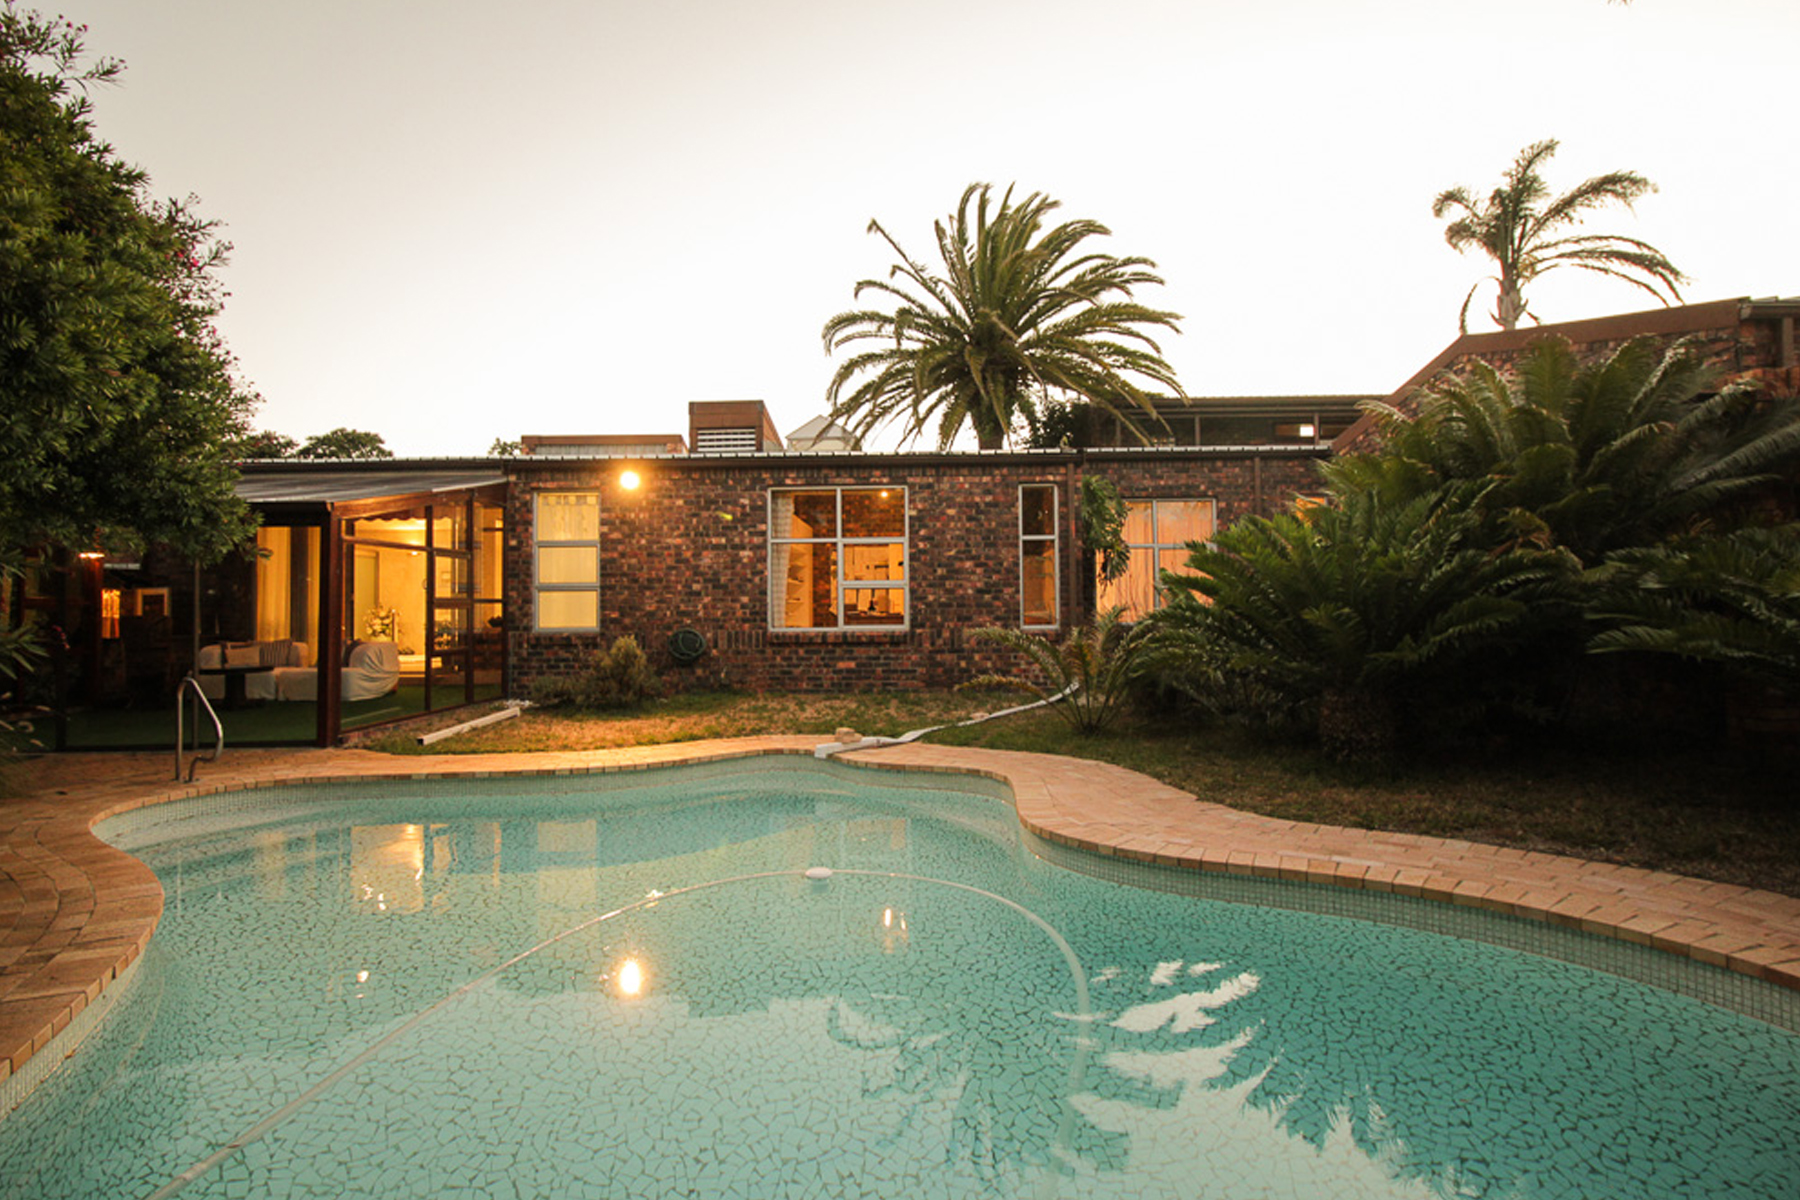 Single Family Home for Sale at Summerstrand Port Elizabeth, Eastern Cape, 6001 South Africa